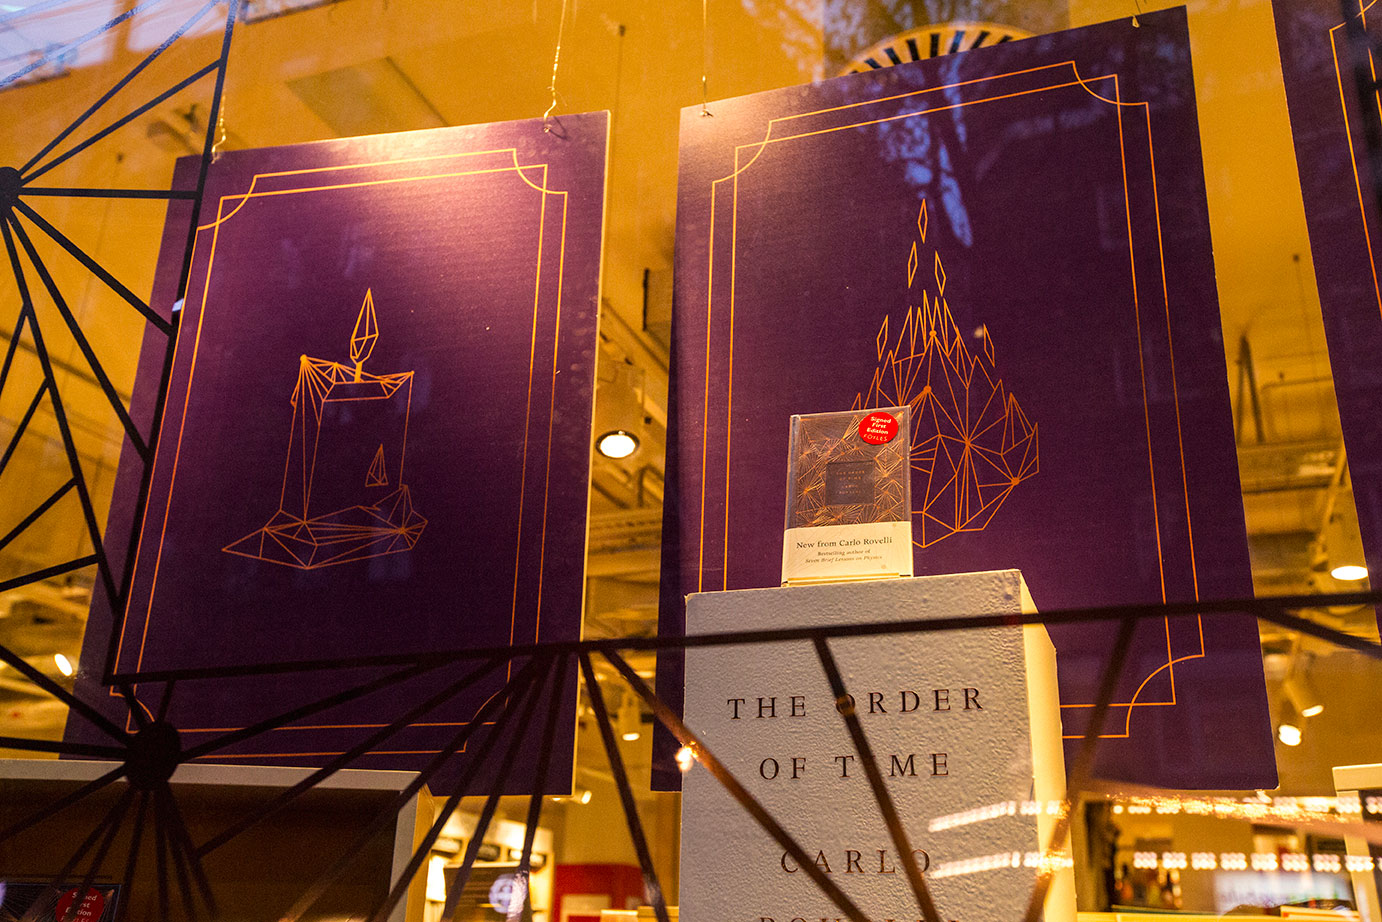 Joseph Botcherby, The Order of Time, Carlo Rovelli, Foyles, Penguin Books, Purple, Poster, Graphic Design